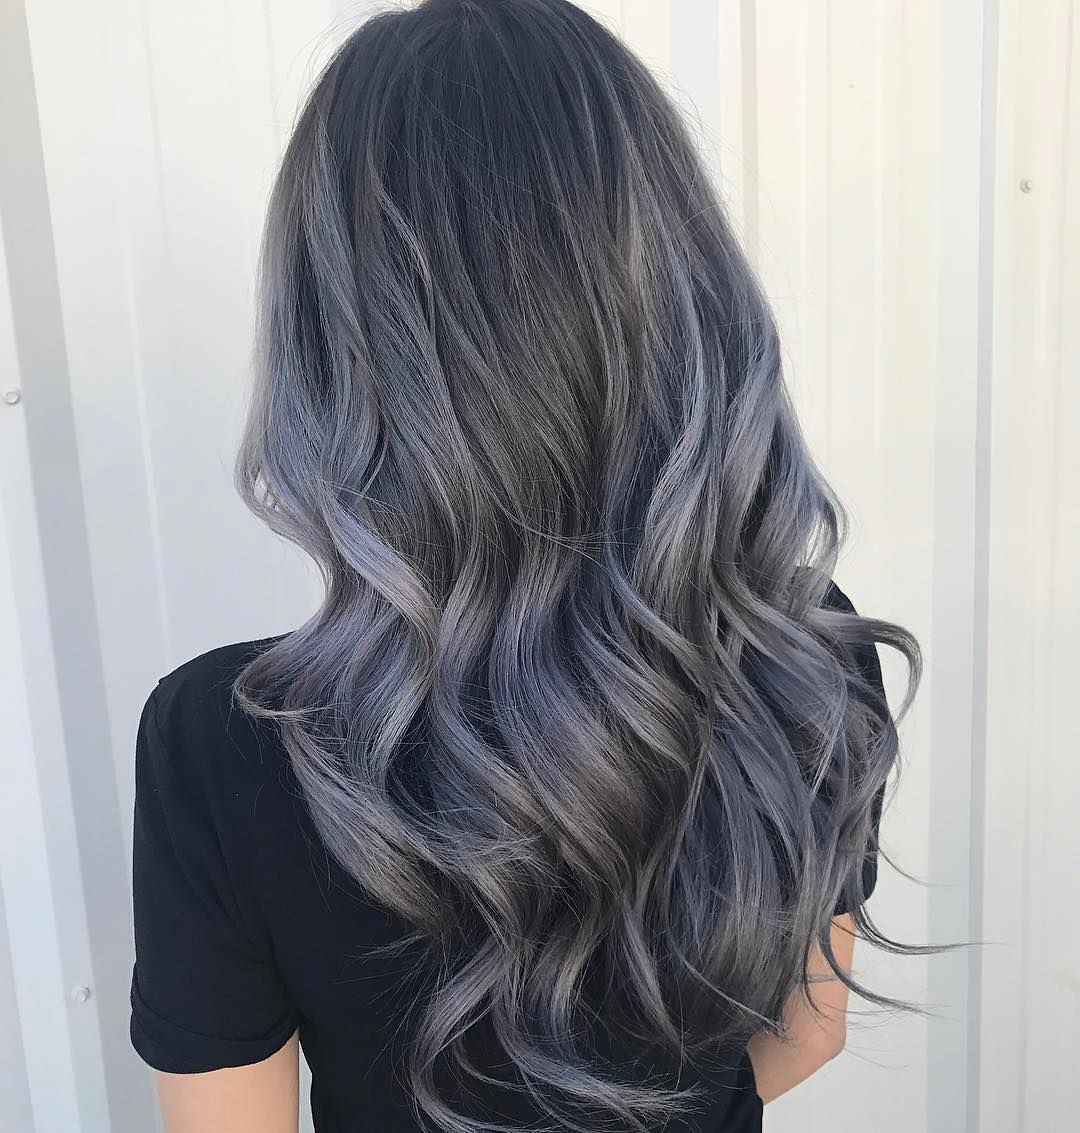 Charcoal Hair The New Low Key Trend On Instagram Bold Hair Color Charcoal Hair Hair Styles